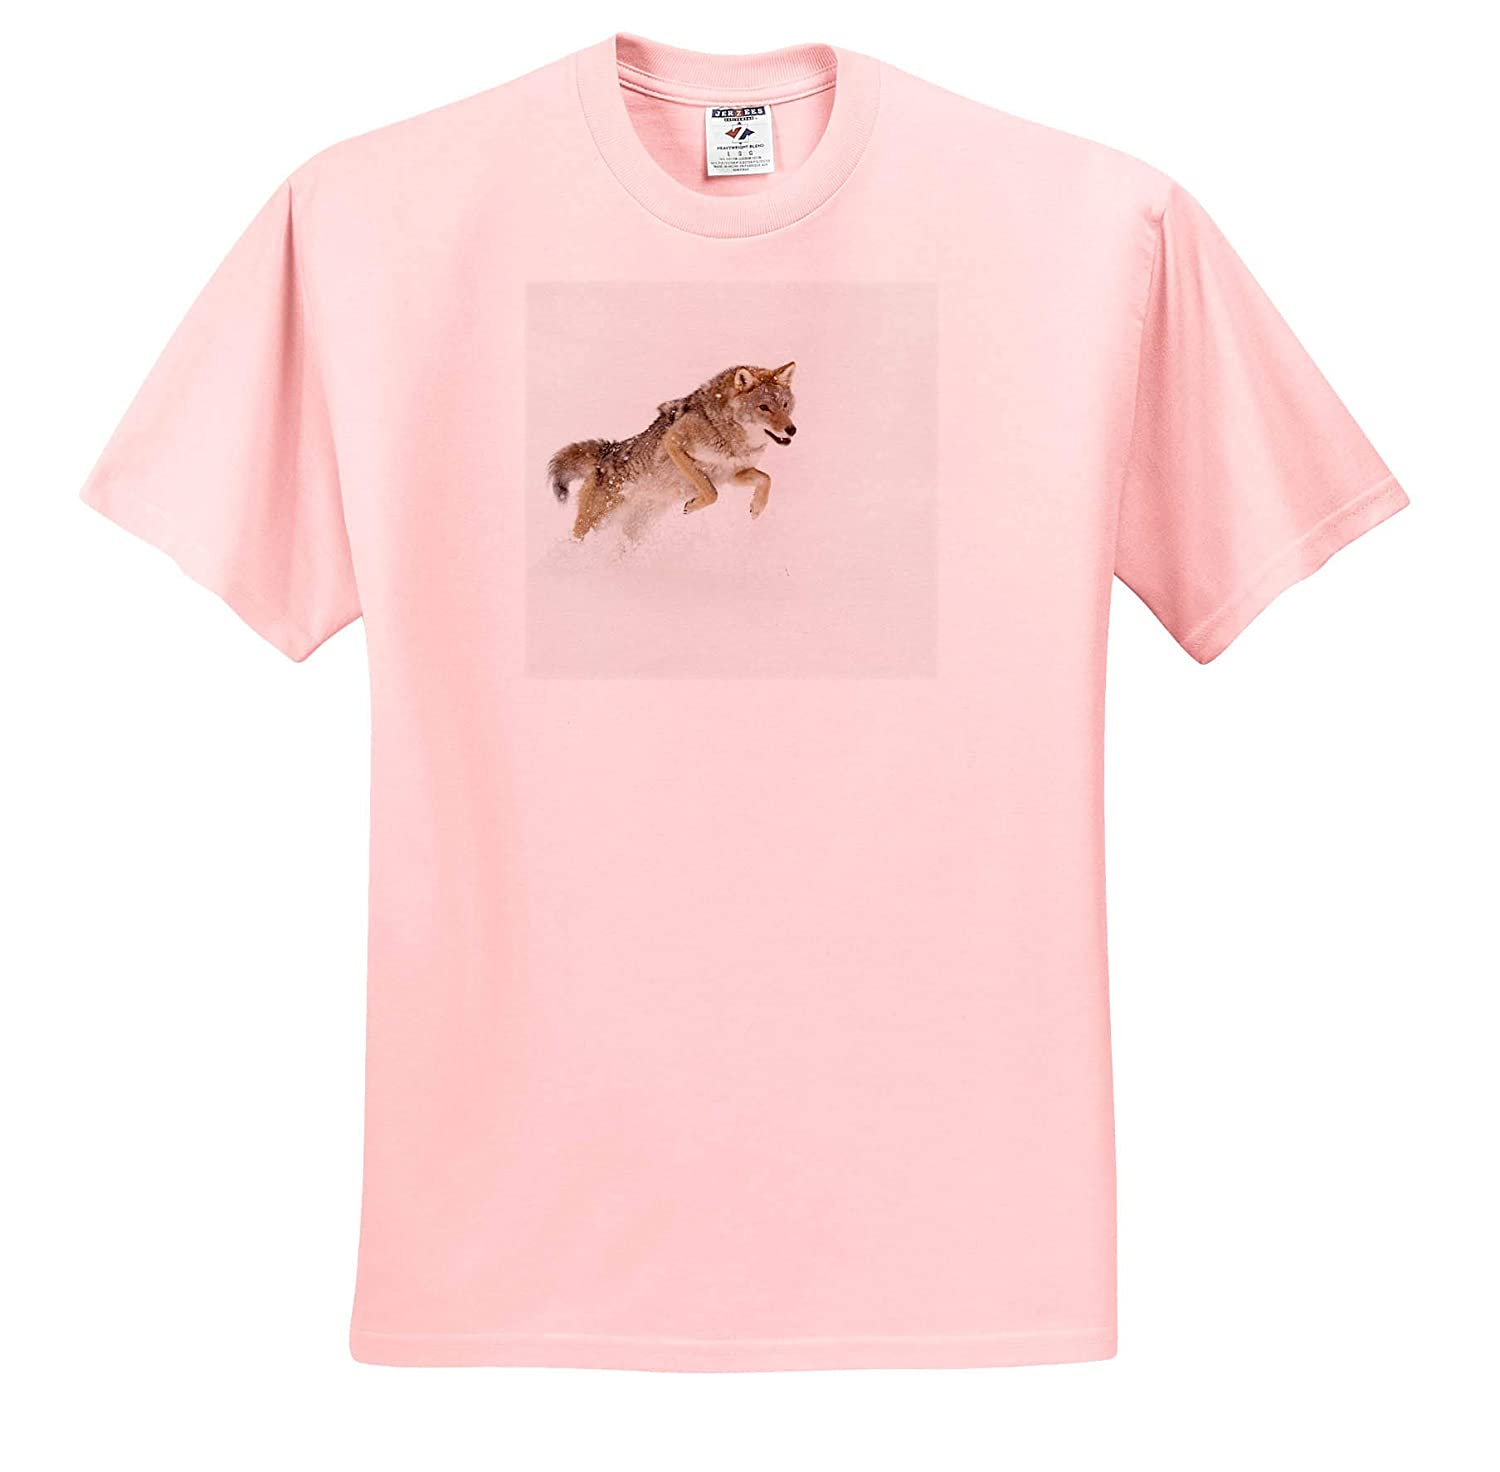 Captive Coyote in Snow Adult T-Shirt XL Coyote ts/_314918 Montana 3dRose Danita Delimont